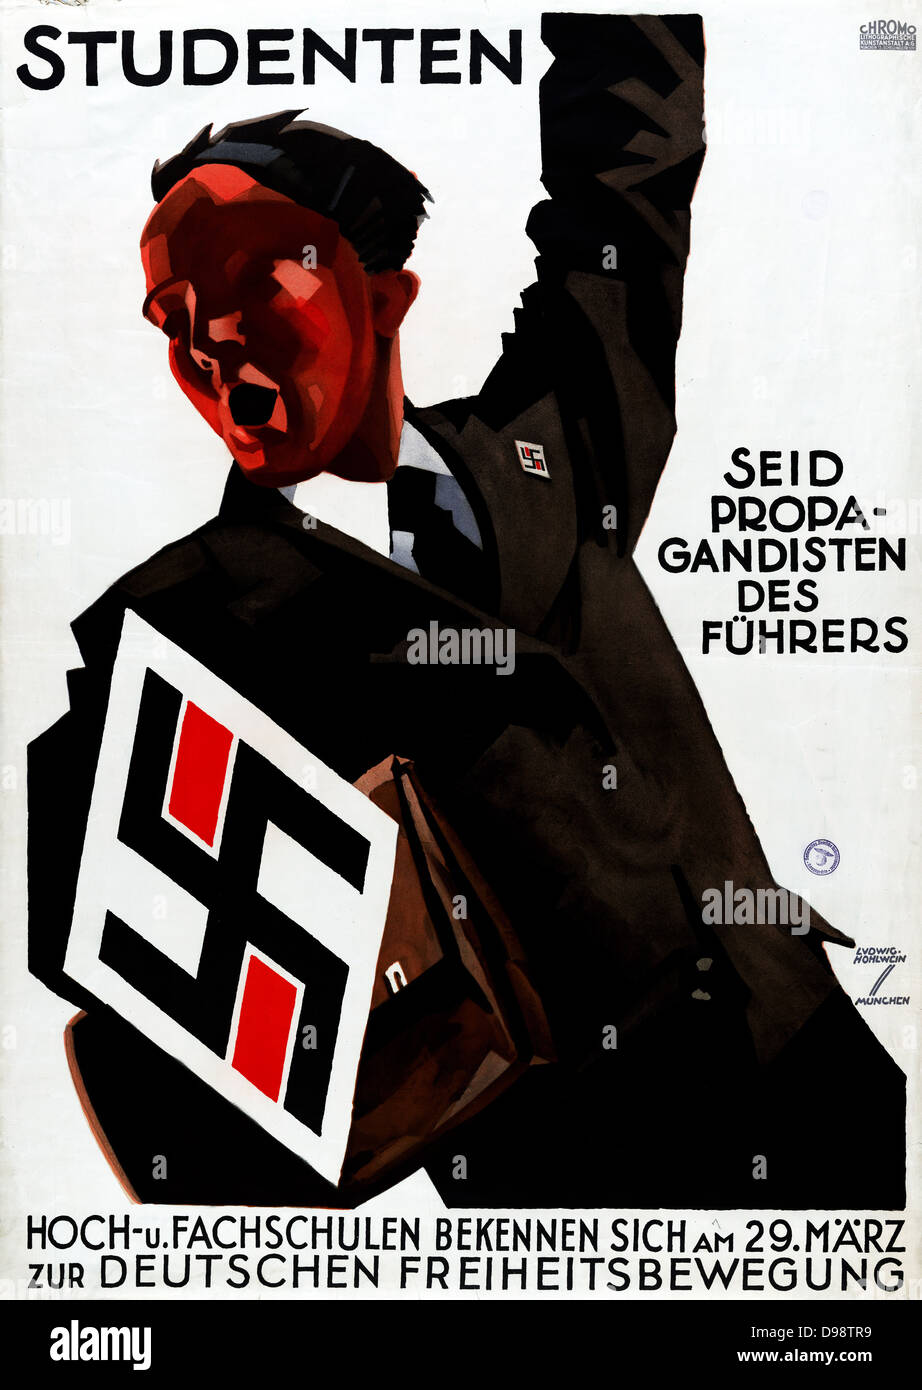 Nazi Propaganda poster c1933. Man, left arm raised, urges students to be propagandists for Führer (Hitler). - Stock Image